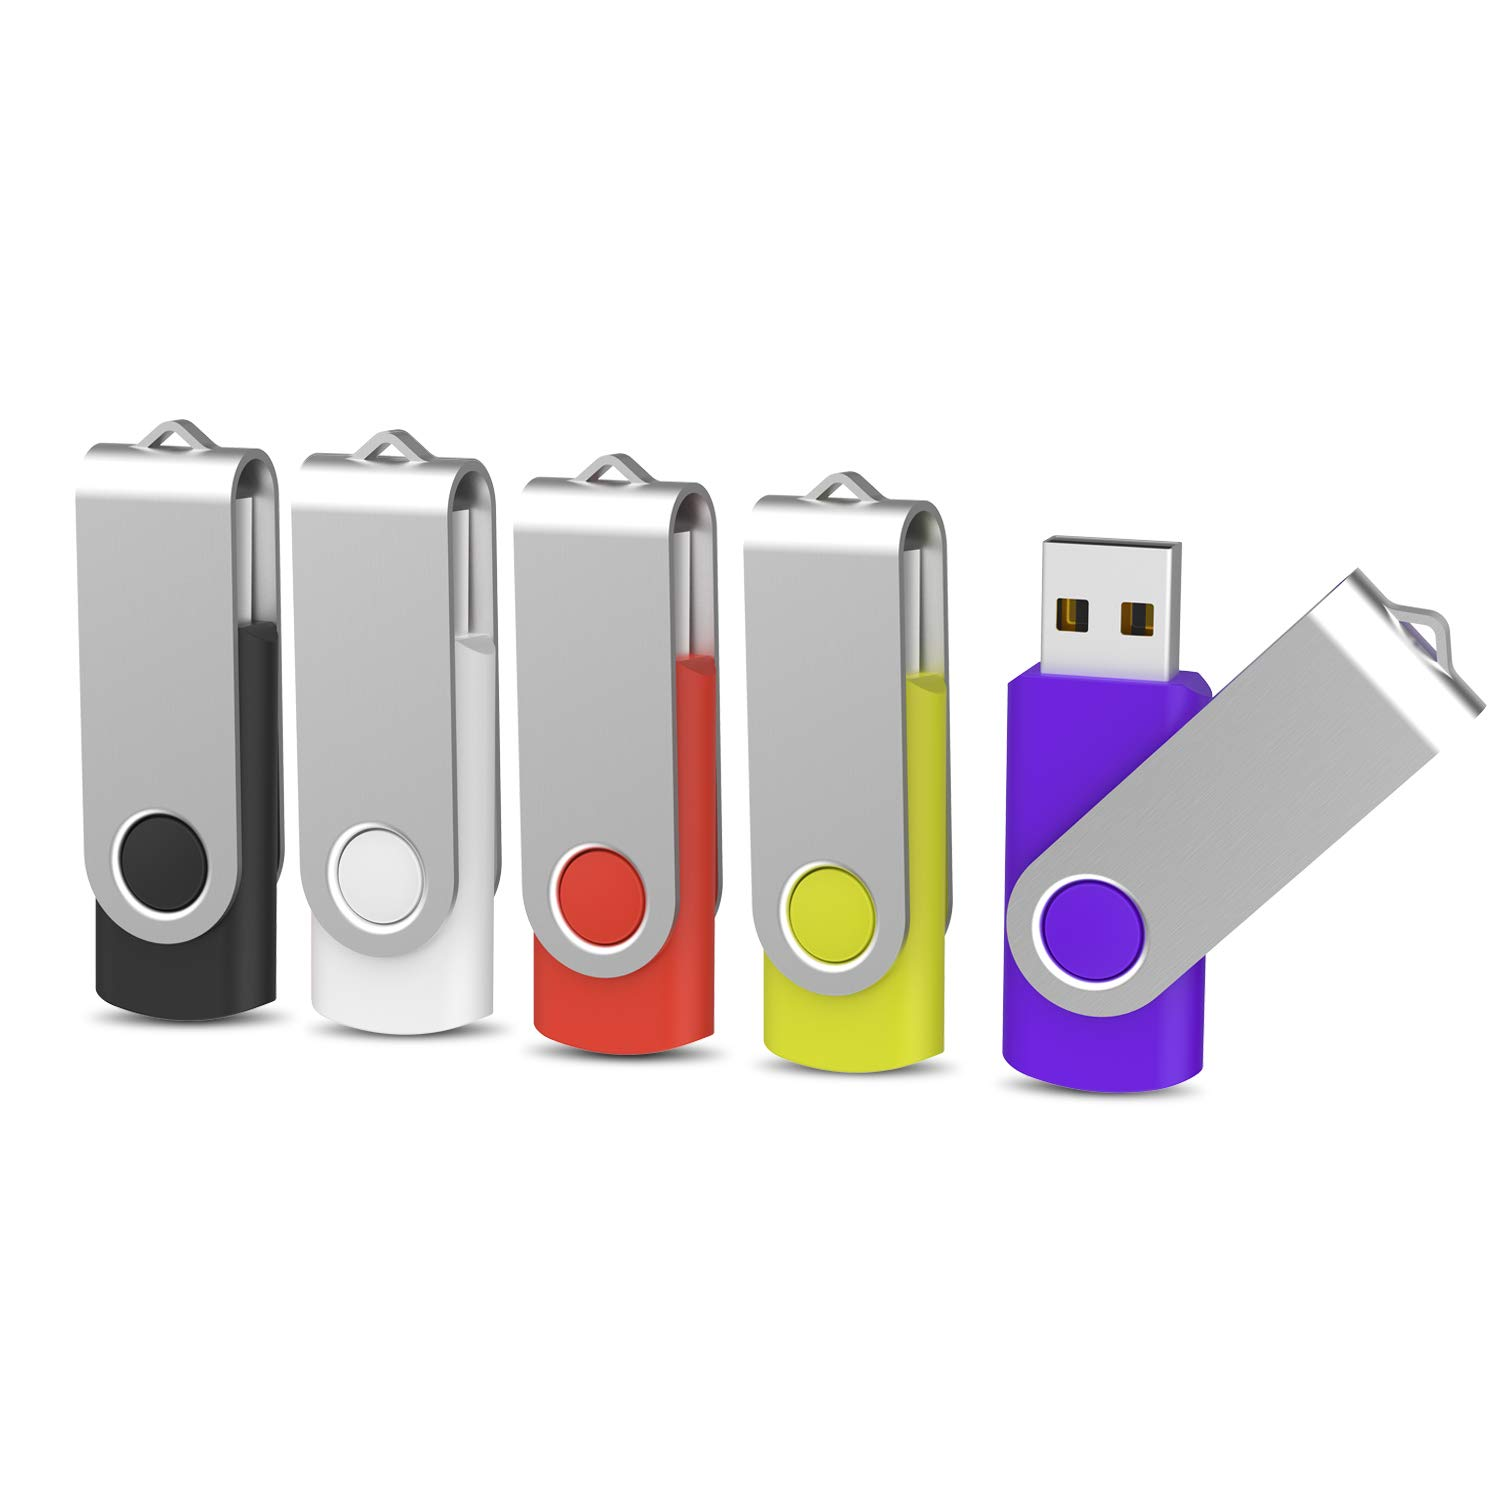 8GB Memoria USB 2.0 5 Unidades KOOTION Pendrive 5 Piezas Flash Drive Pen Drives 8 Giga Memory USB Stick Pack 5 Lote Pen USB, Negro, Blanco, Rojo, Amarillo, Púrpura: Amazon.es: Electrónica